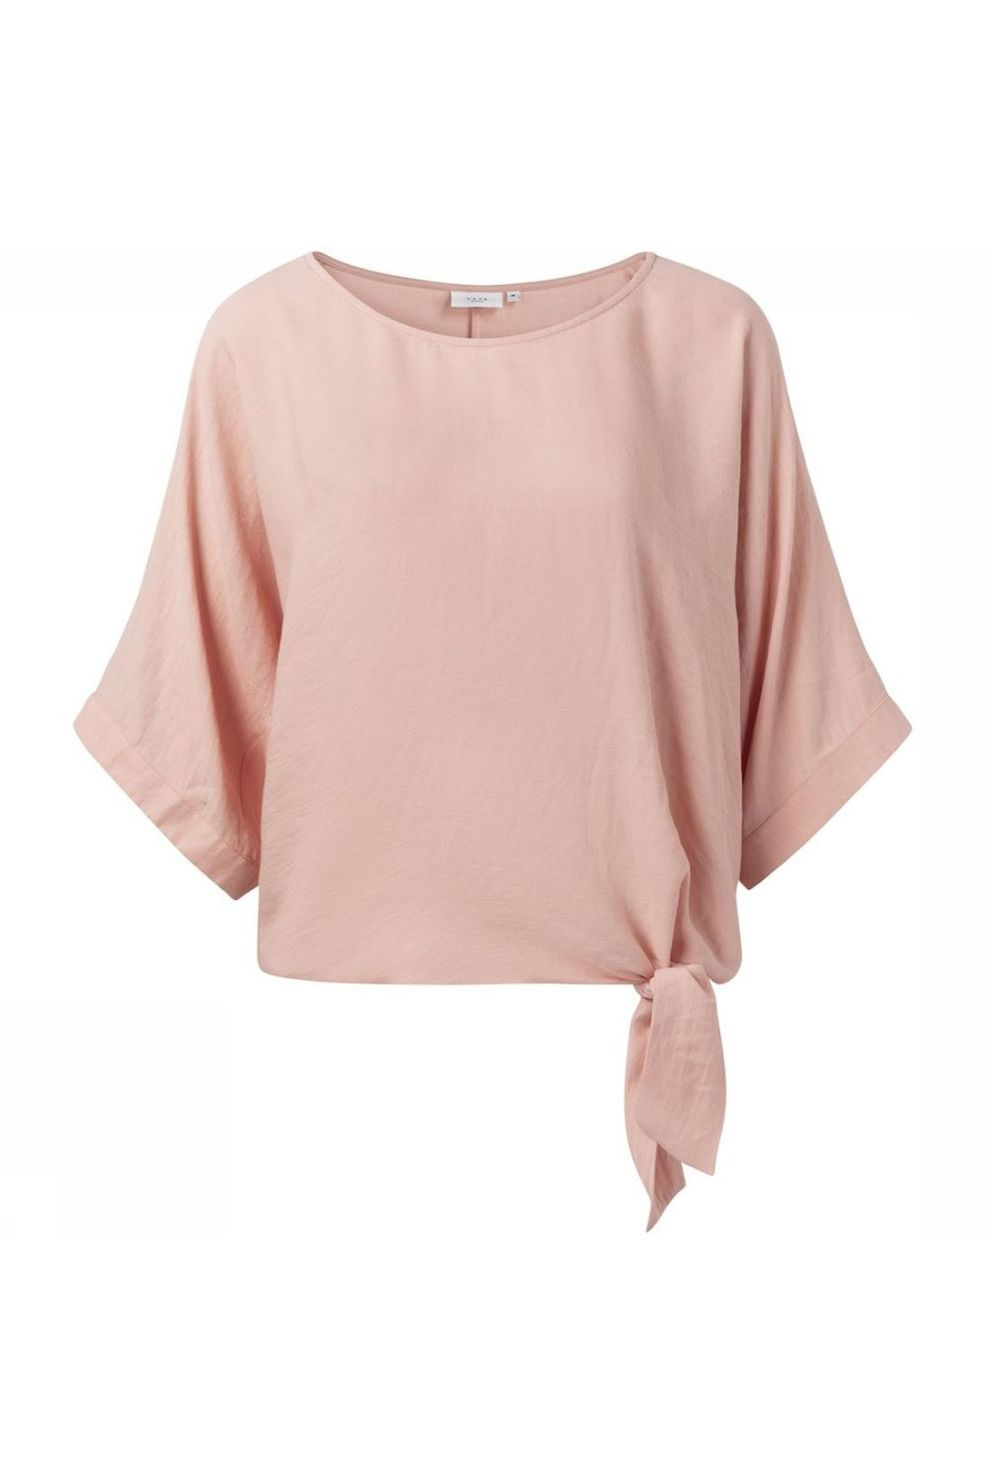 YAYA Blouse Oversized Kimono Sleeves And Knotted Detail voor dames - Roze - Maten: 34, 36, 38, 40, 4